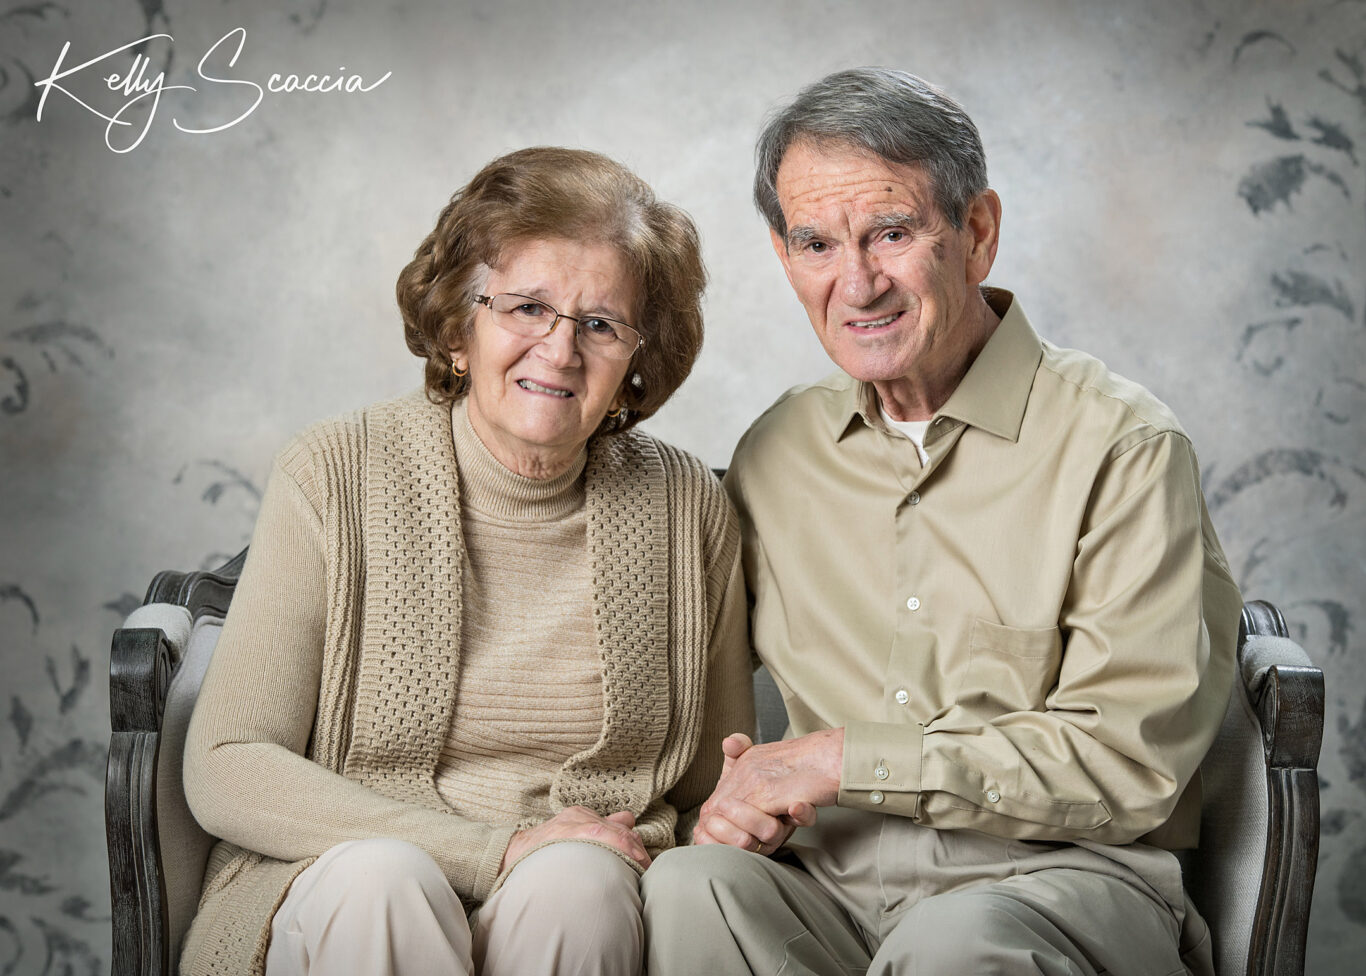 Studio portrait of grandma and grandpa, wearing brown tones, sitting on a couch, smiling looking at you